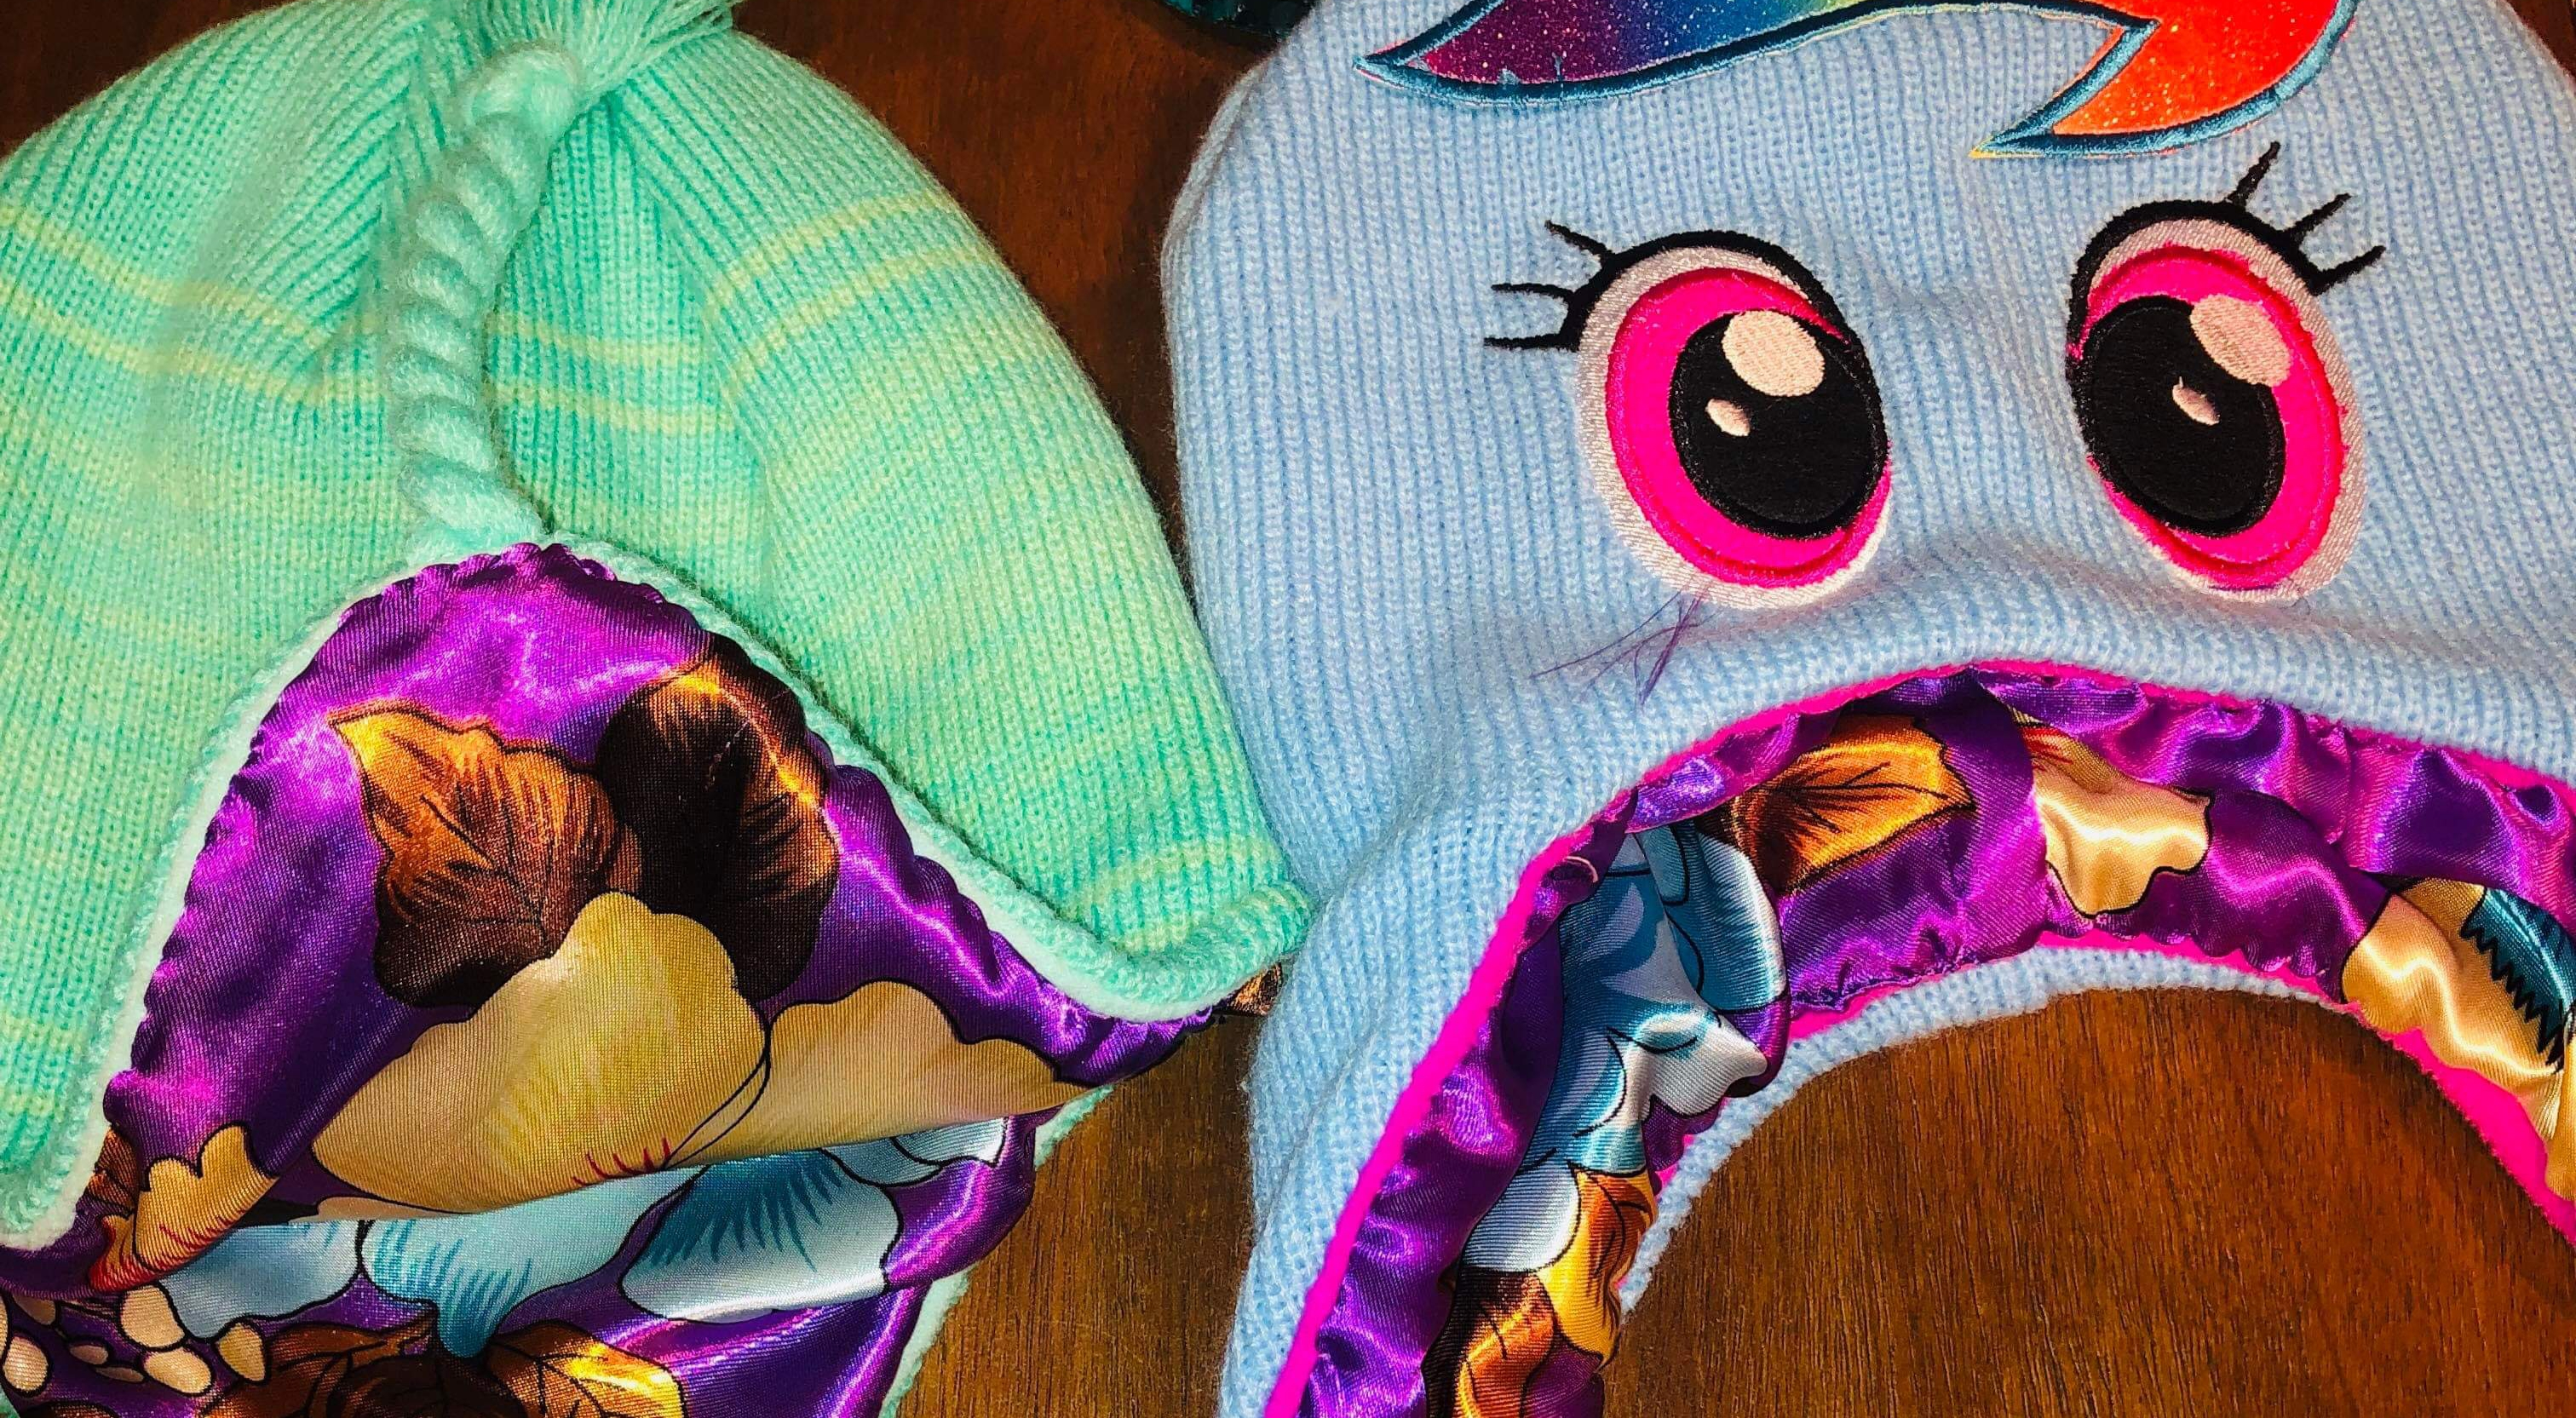 Mom adds silk-lined protection to daughter's winter hats, and it's genius